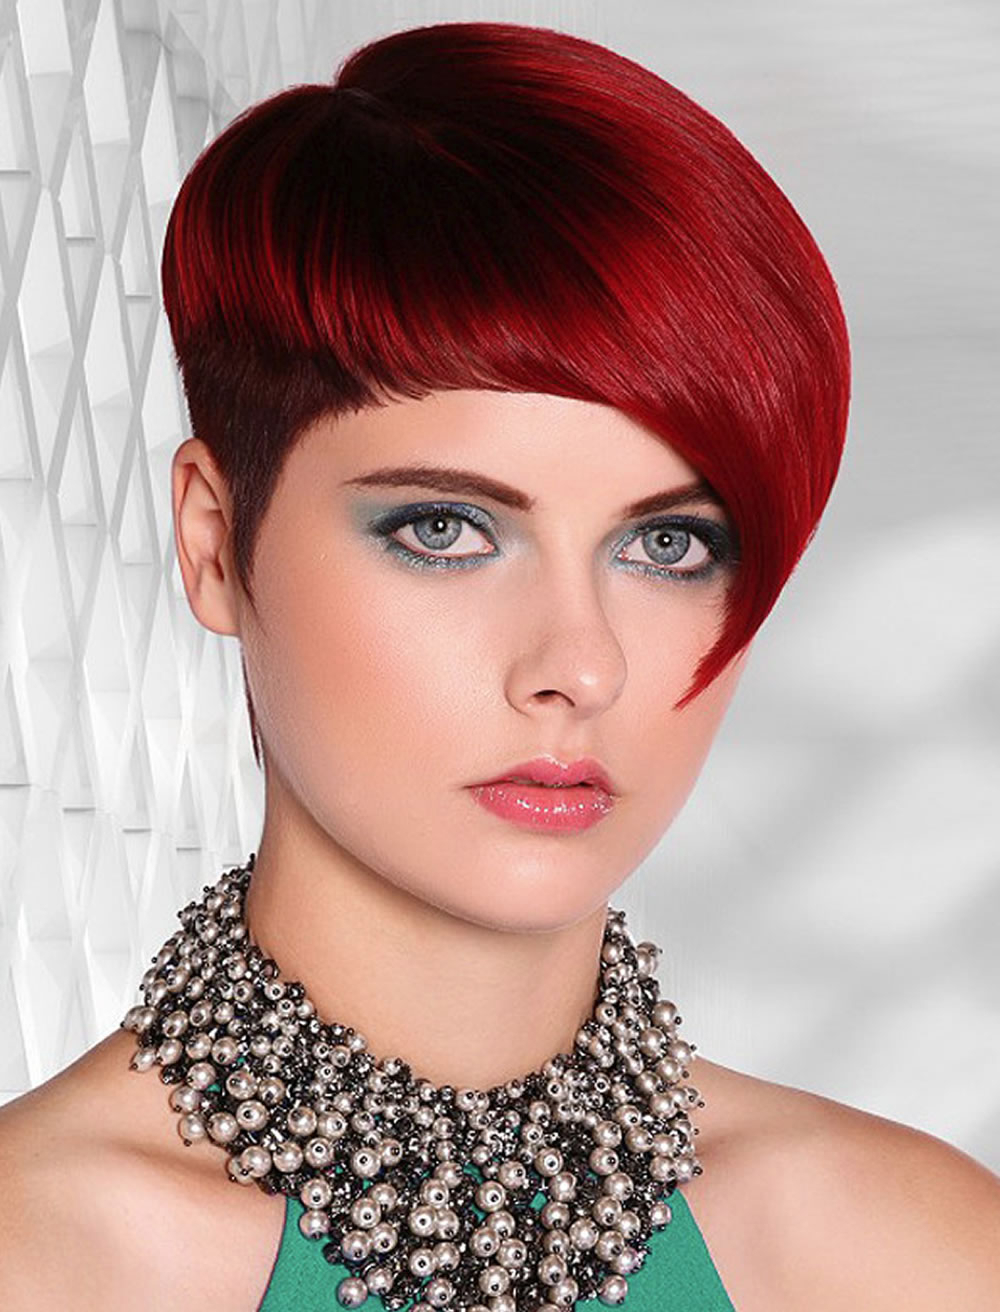 Short Hair Hairstyles For Spring & Summer 2018 2019 – Hairstyles With Regard To Summer Hairstyles For Short Hair (View 24 of 25)